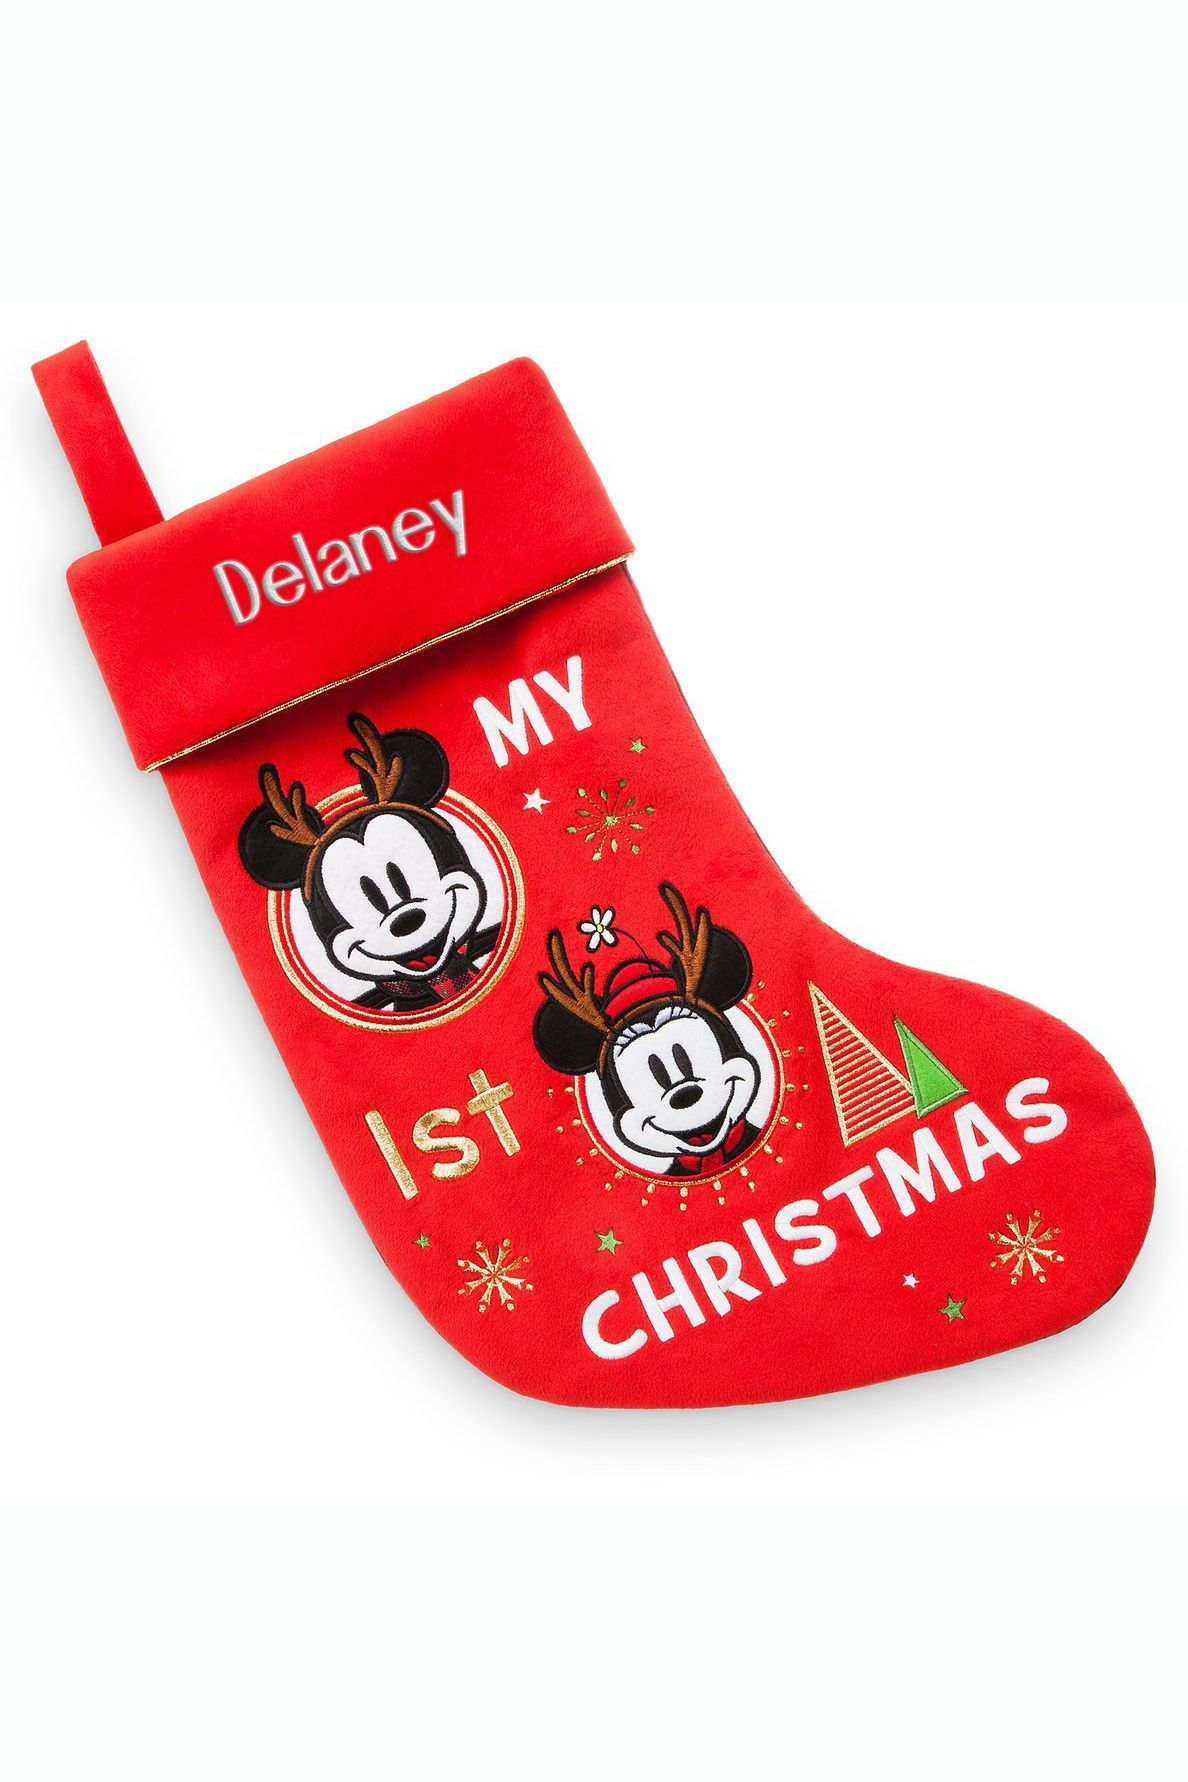 07f3c3fe5 15 Baby's First Christmas Stockings - Cute Ideas for Infant Boy and Girl  Stockings